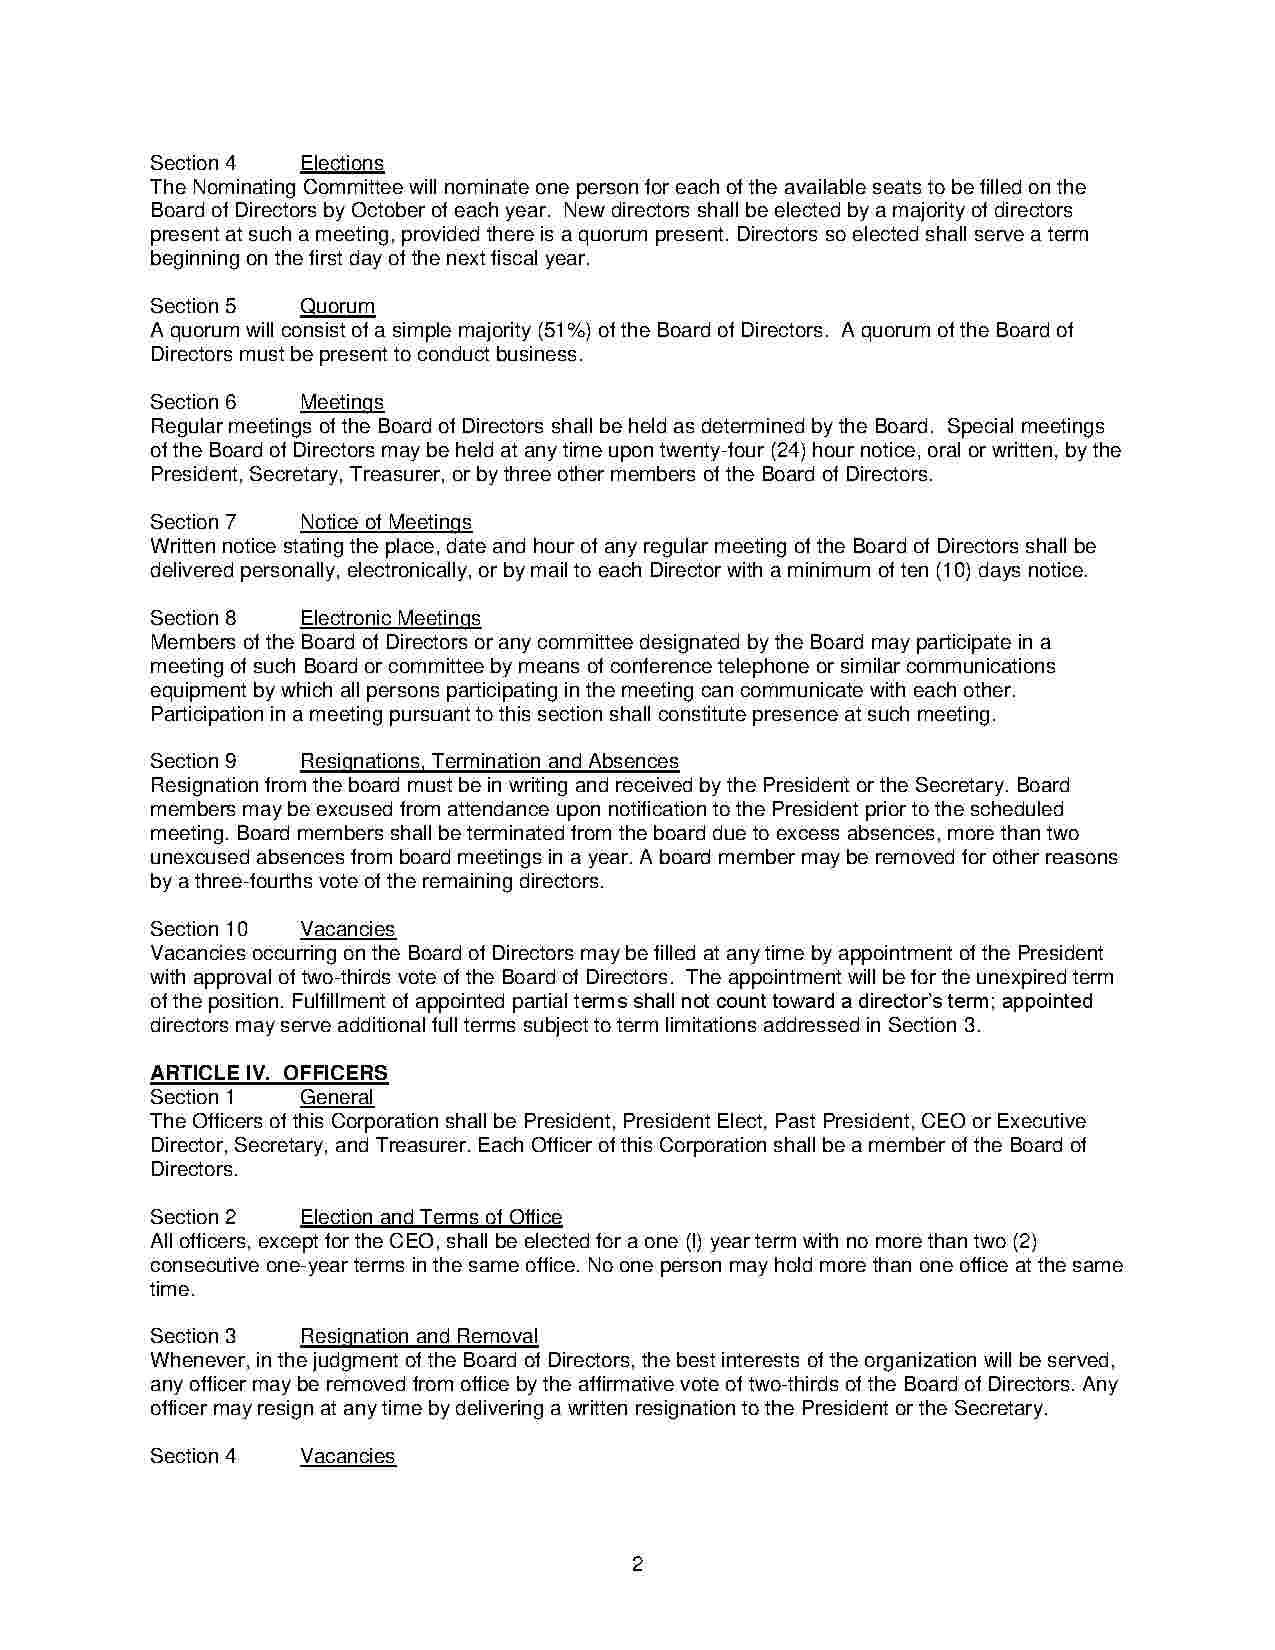 Download Corporate Bylaws Style 8 Template For Free At In Corporate Bylaws Template Word Best Sample T Business Template Professional Templates Word Template